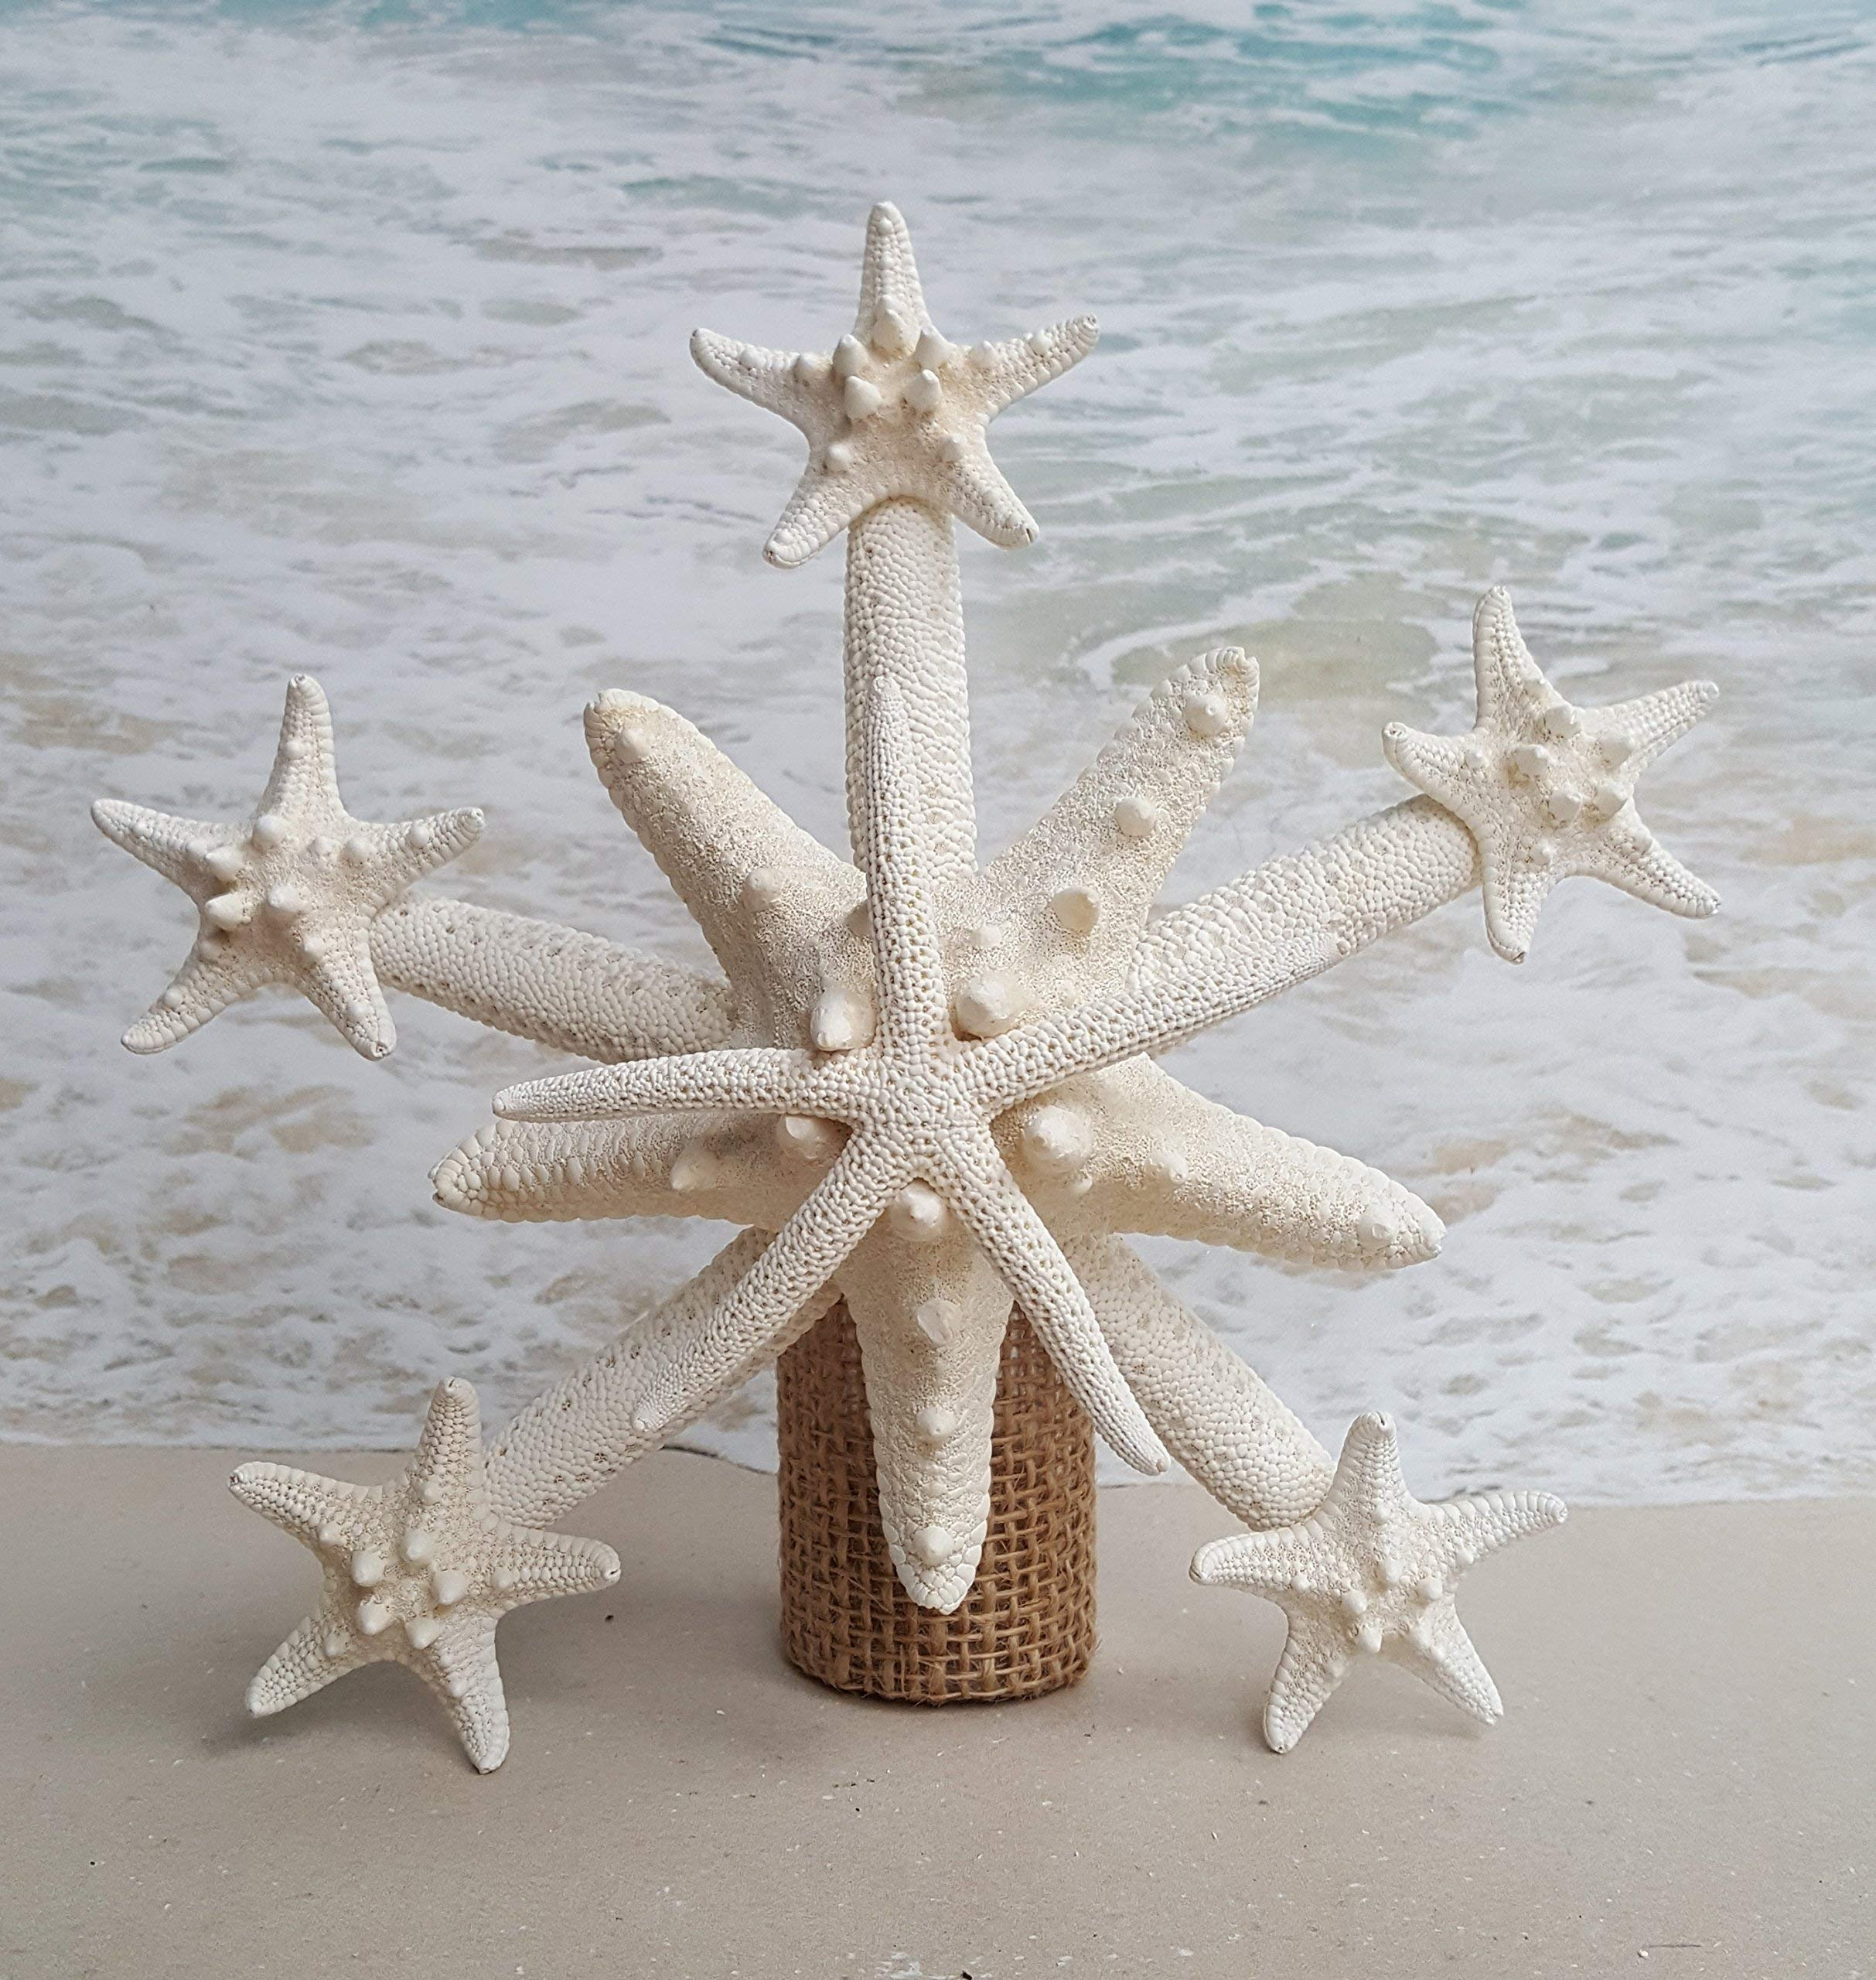 Deluxe Starfish Tree Topper - Different size options up to 15-16''